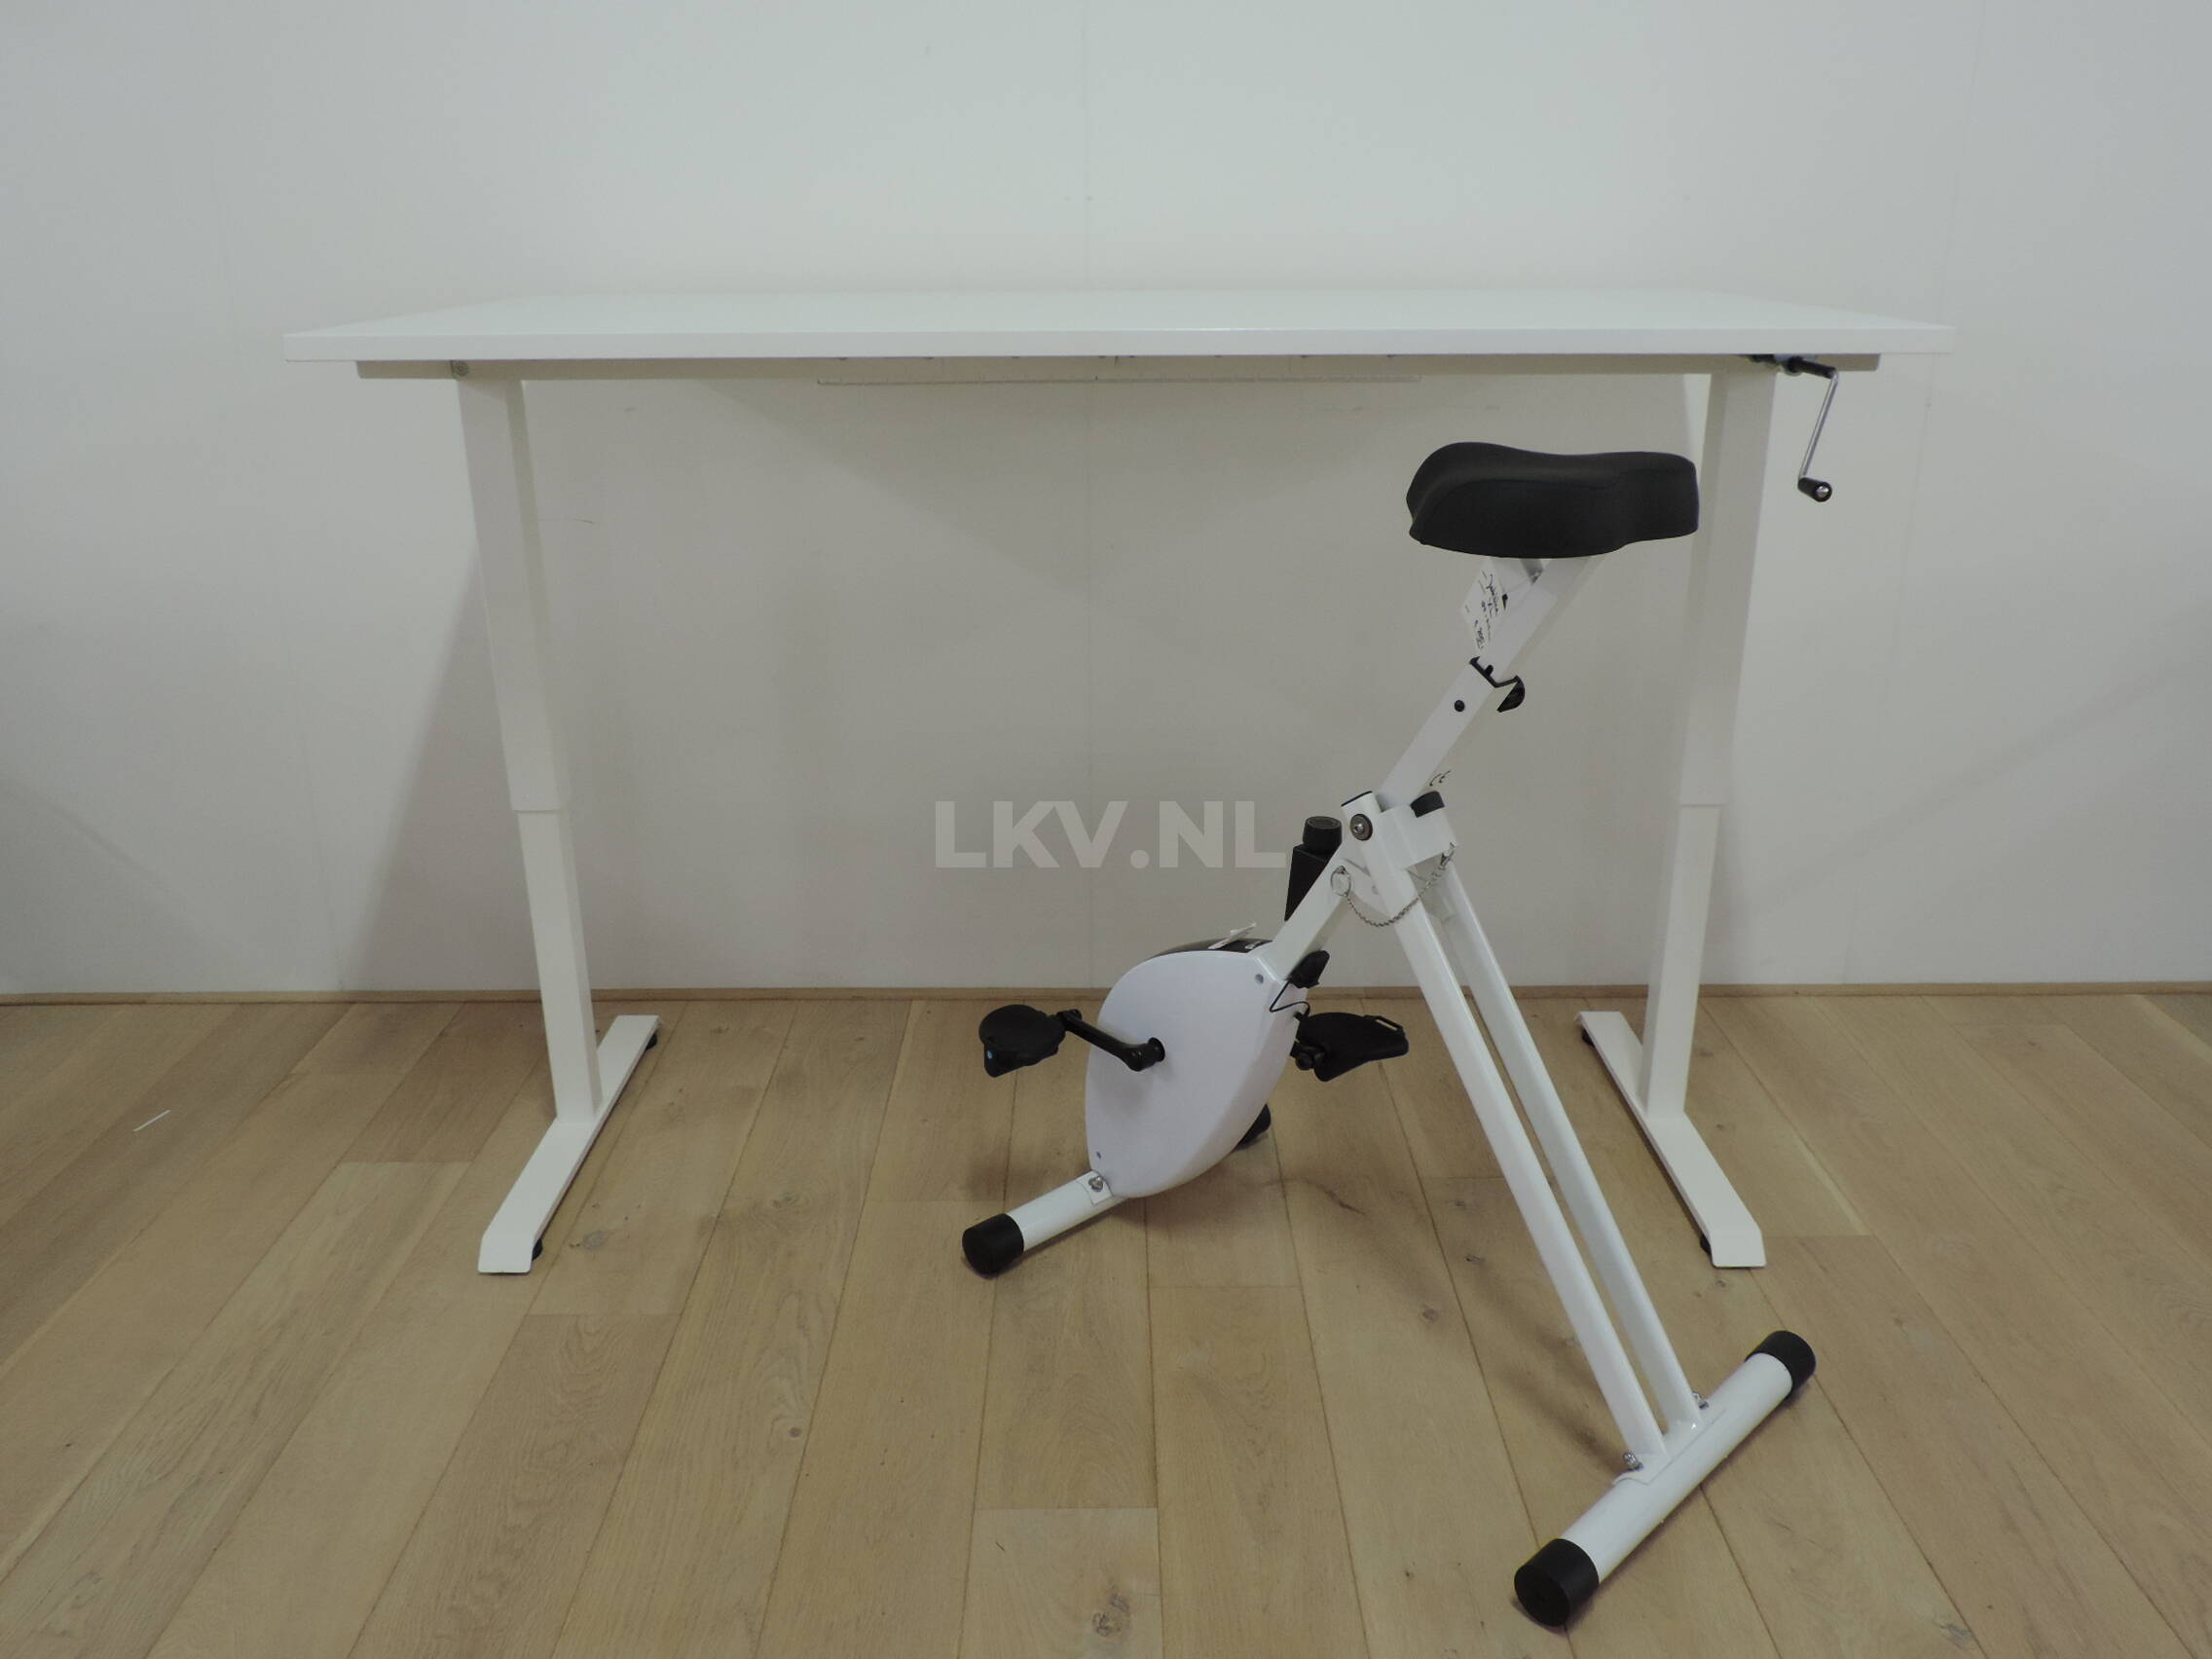 Flex light bureau - WitFlex light bureau - Wit - Sta-zit